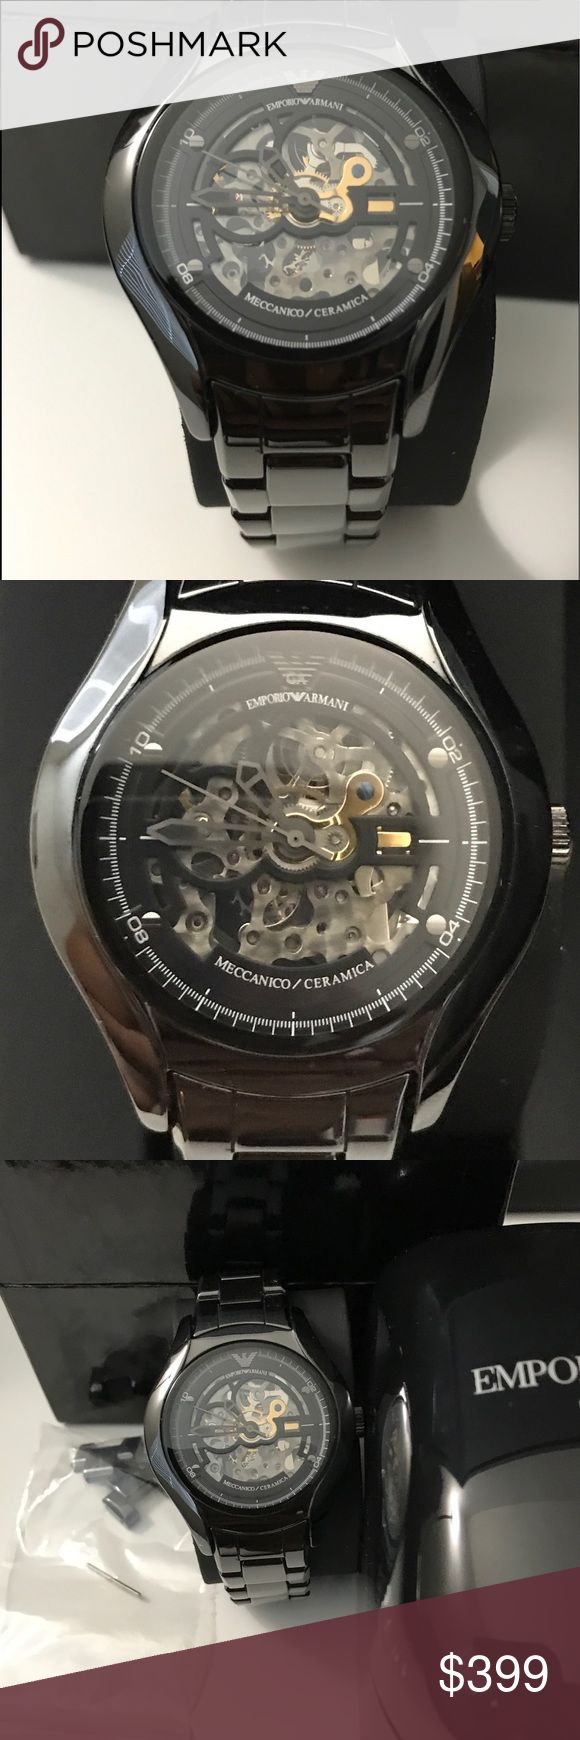 Emporio Armani MECCANICO AR1427 CERAMIC WATCH Original Price $645. BRAND:Emporio Armani SERIES:Meccanico MODEL:AR1427  WATCH LABEL:Made in Italy MOVEMENT:Automatic CASE SIZE:38 mm CASE THICKNESS:10 mm CASE MATERIAL:Black Ceramic with Gunmetal Accents CASE SHAPE:Round CASE BACK:Solid  DIAL TYPE:Analog DIAL COLOR:Skeleton CRYSTAL:Mineral HANDS:Black-tone SECOND MARKERS:Minute markers around the outer rim. The Emporio Eagle appears at the 12 o'clock position BEZEL:Fixed Black Ceramic  BAND…